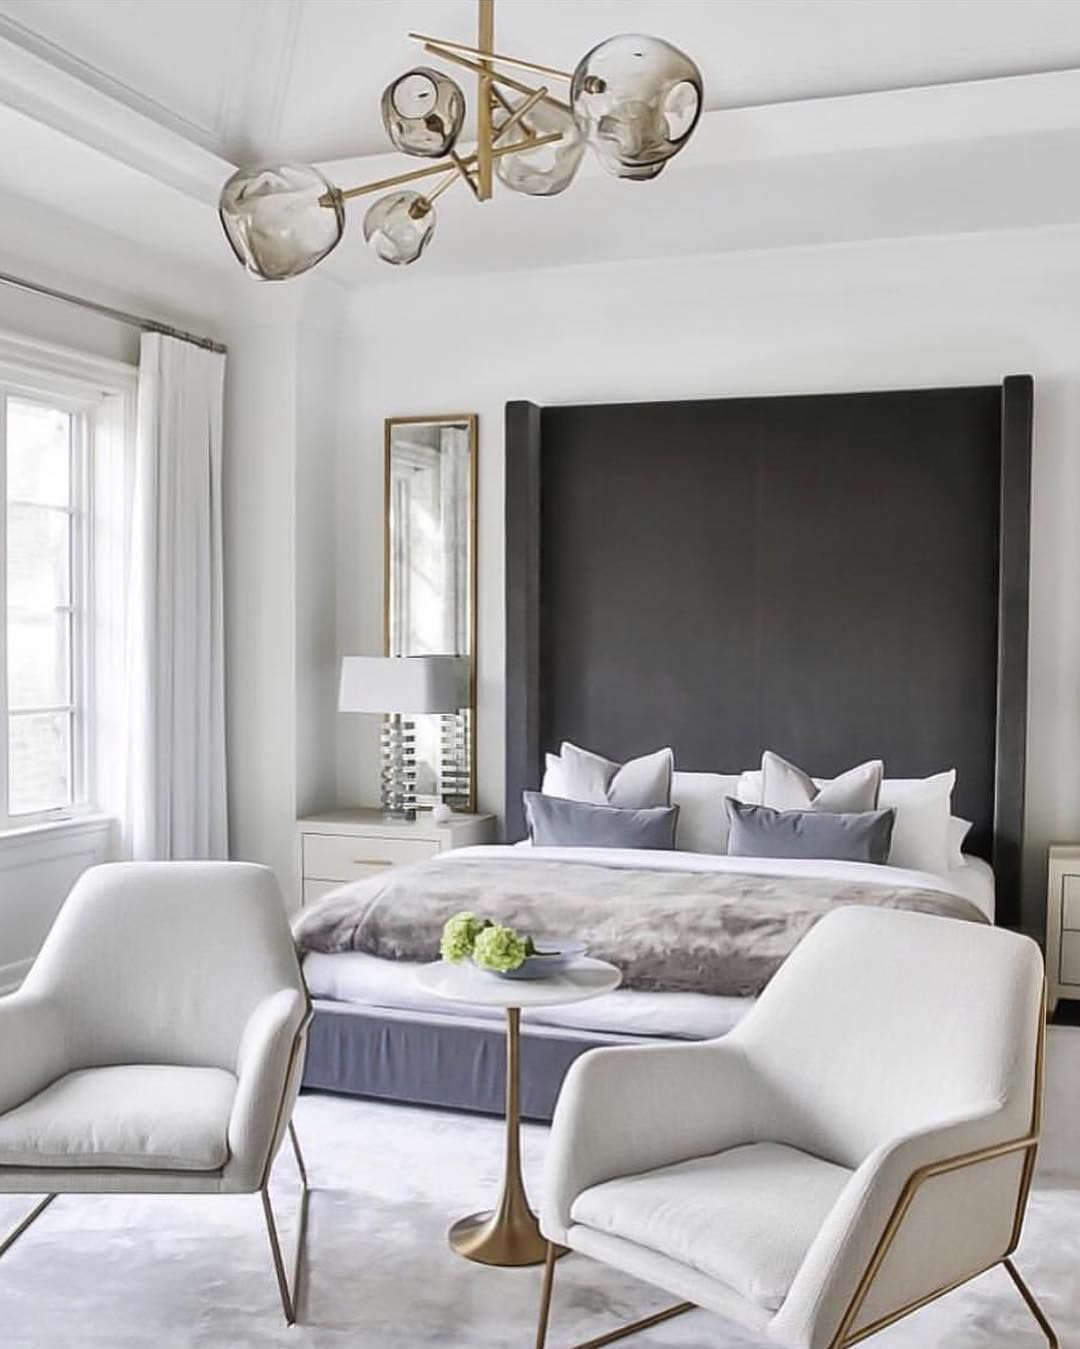 Bedroom Furniture You Ll Love: I Love The Proportion Of The Bed's Headboard In This Room